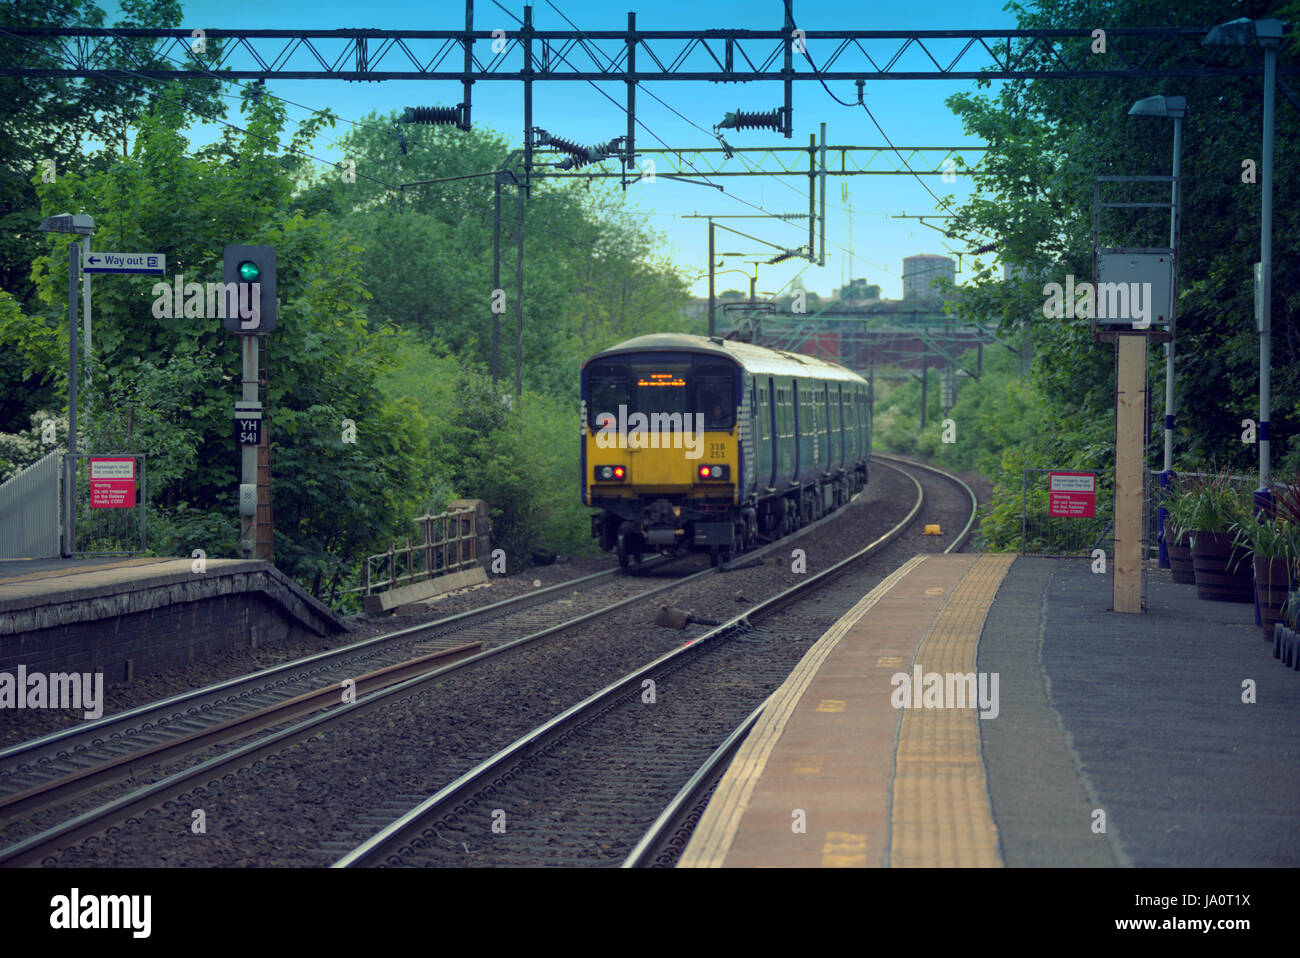 scotrail train station  station platform Drumchapel - Stock Image